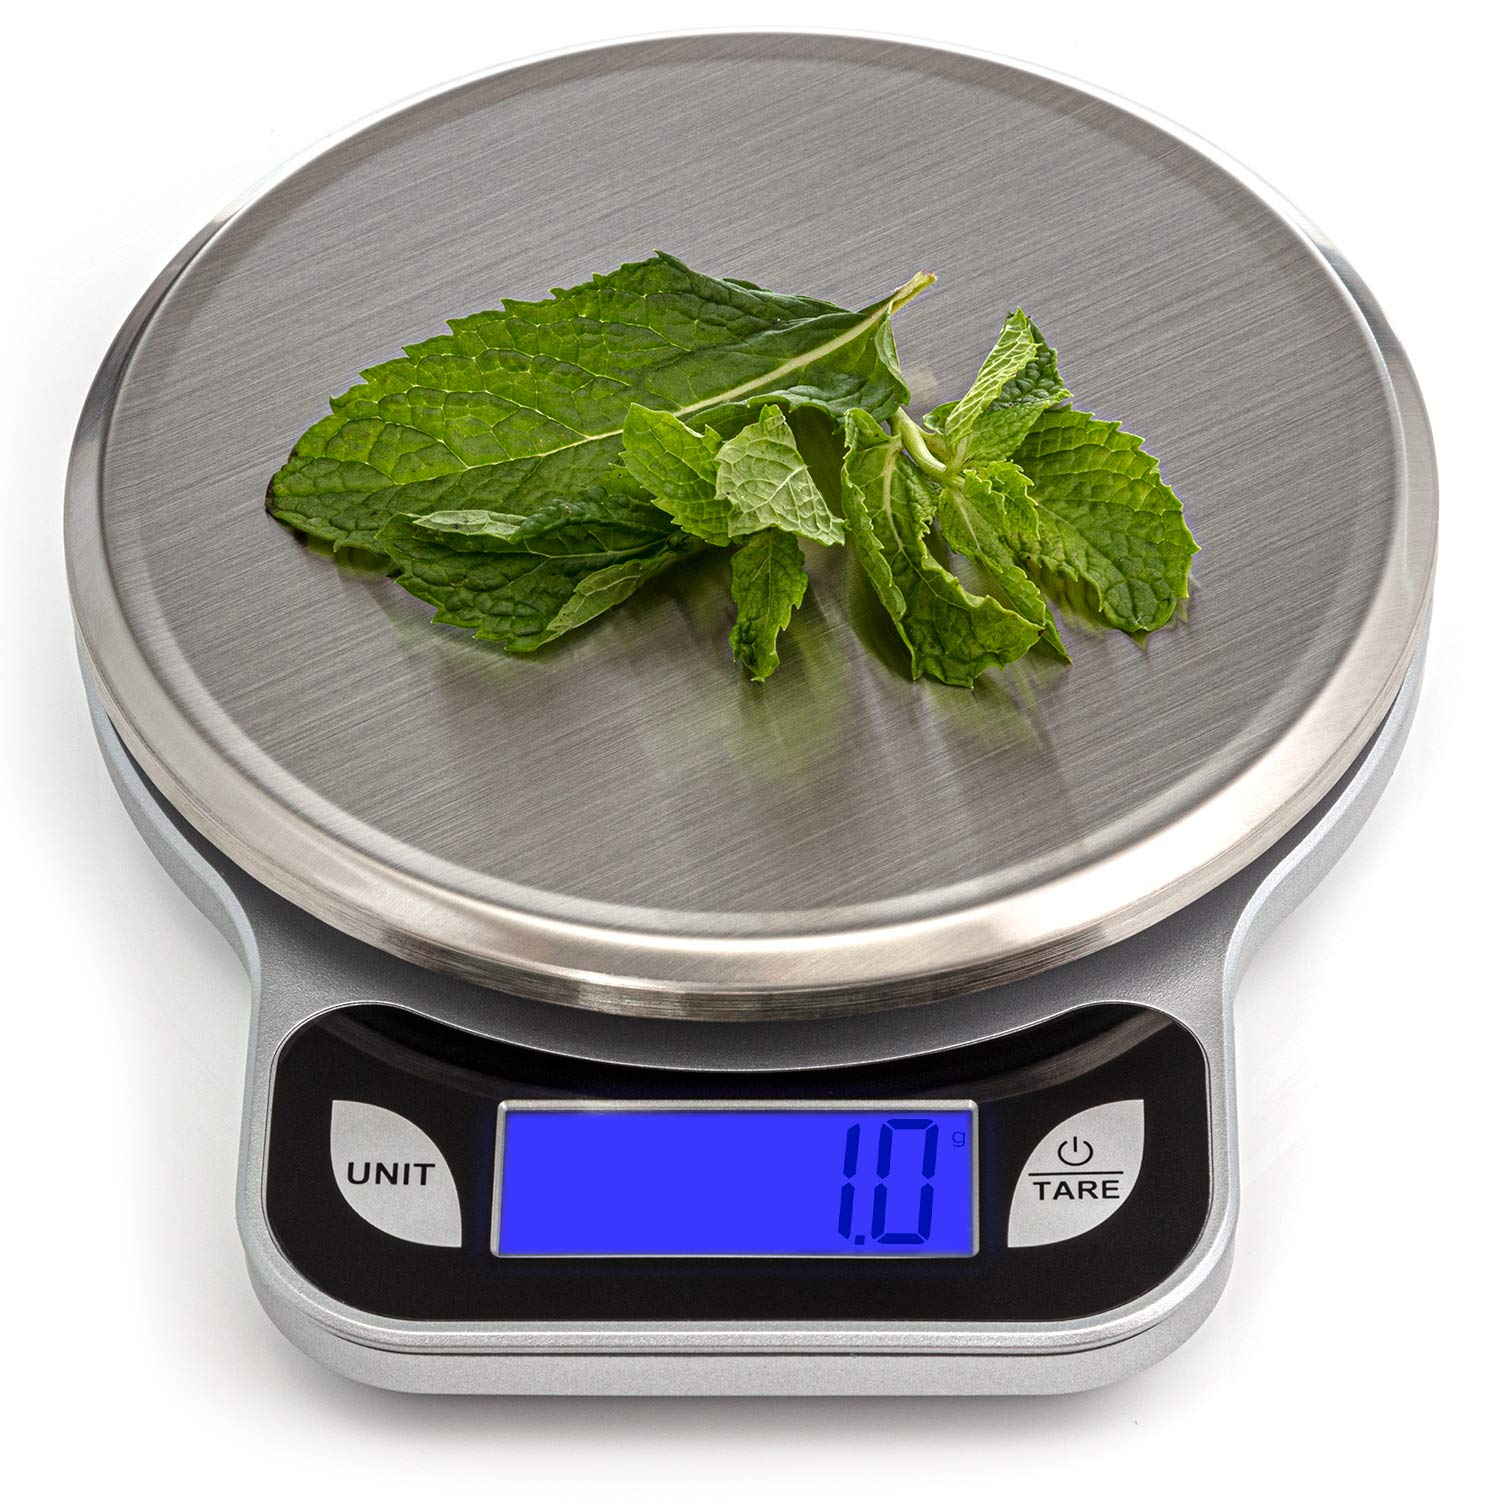 SALUBRE++ Digital Food Scale with Stainless Steel Weighing Platform. Digital Kitchen Scale weighs in Pounds, Ounces, or Grams to 13 lb (5.89 kg) with 1/2 gm Increments. Batteries Included. by REM Concepts